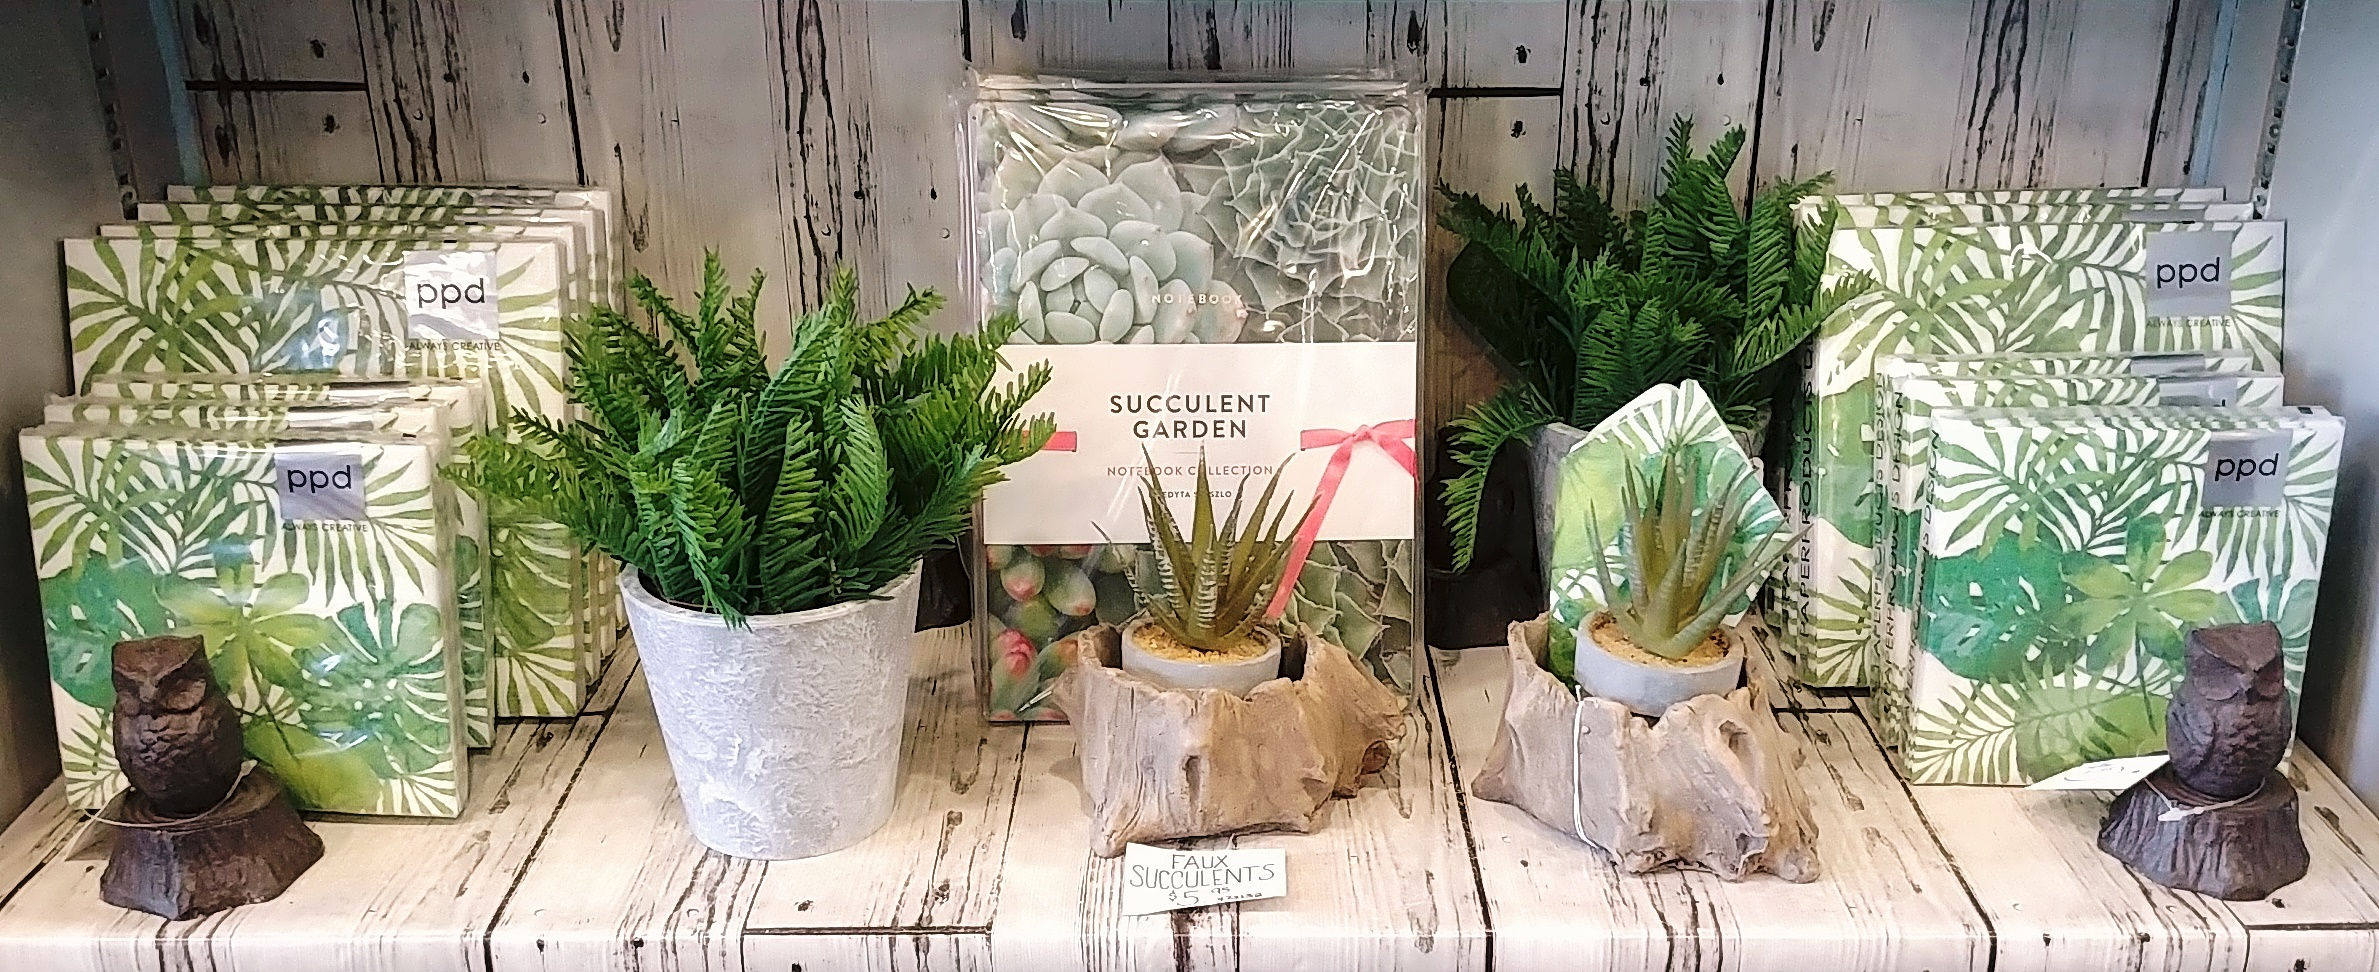 Green, from beginning to end. Succulents are the theme in this corner of the shop, while we wait for spring to arrive.  April 25, 2019